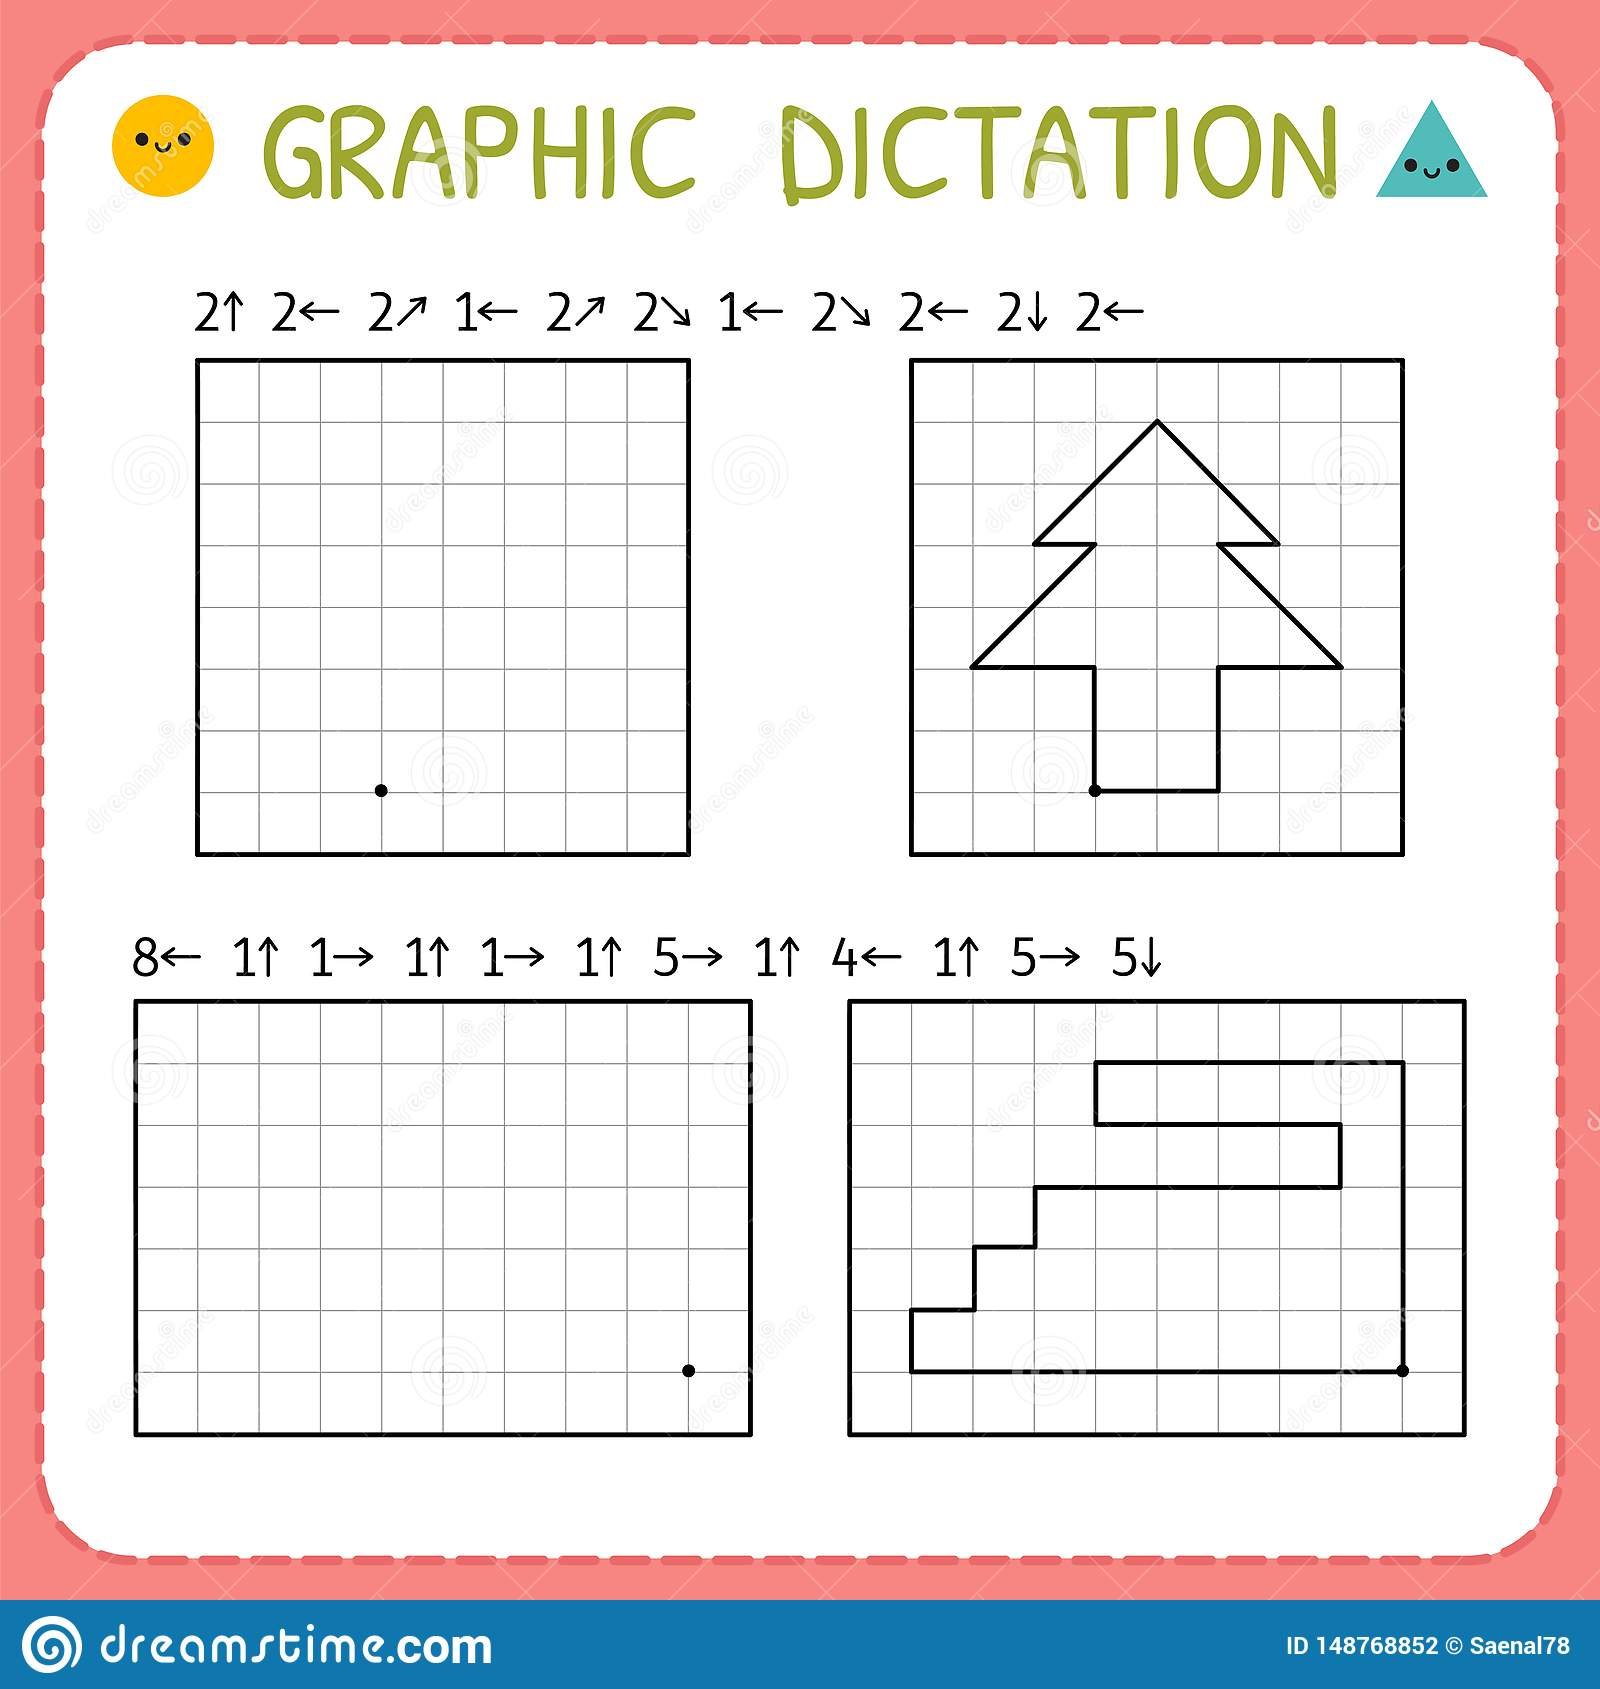 Graphic Dictation Preschool Worksheets For Practicing